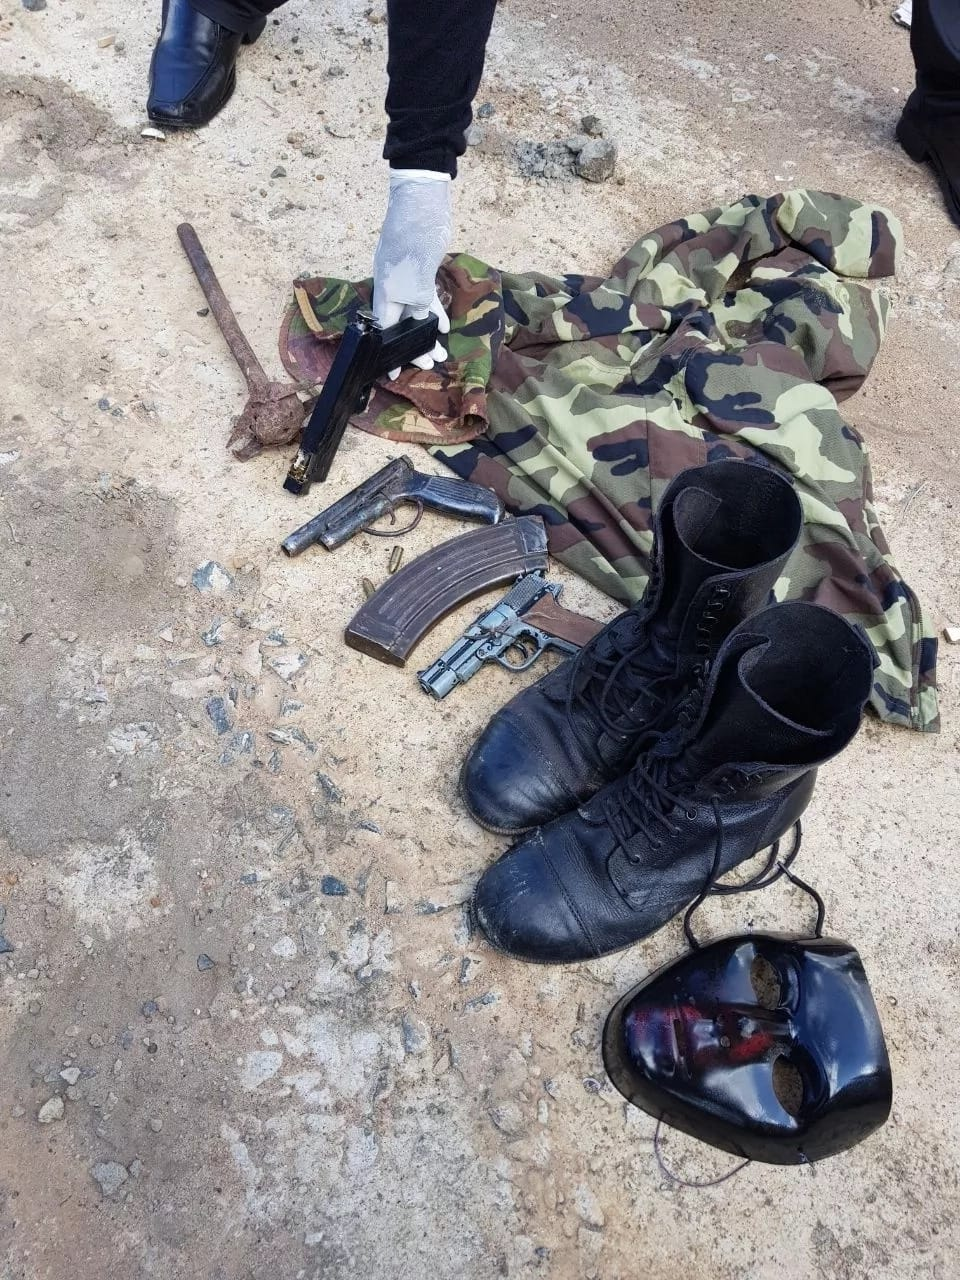 Nairobi's deadly three-gang robbers gunned down, a month after they killed a police officer